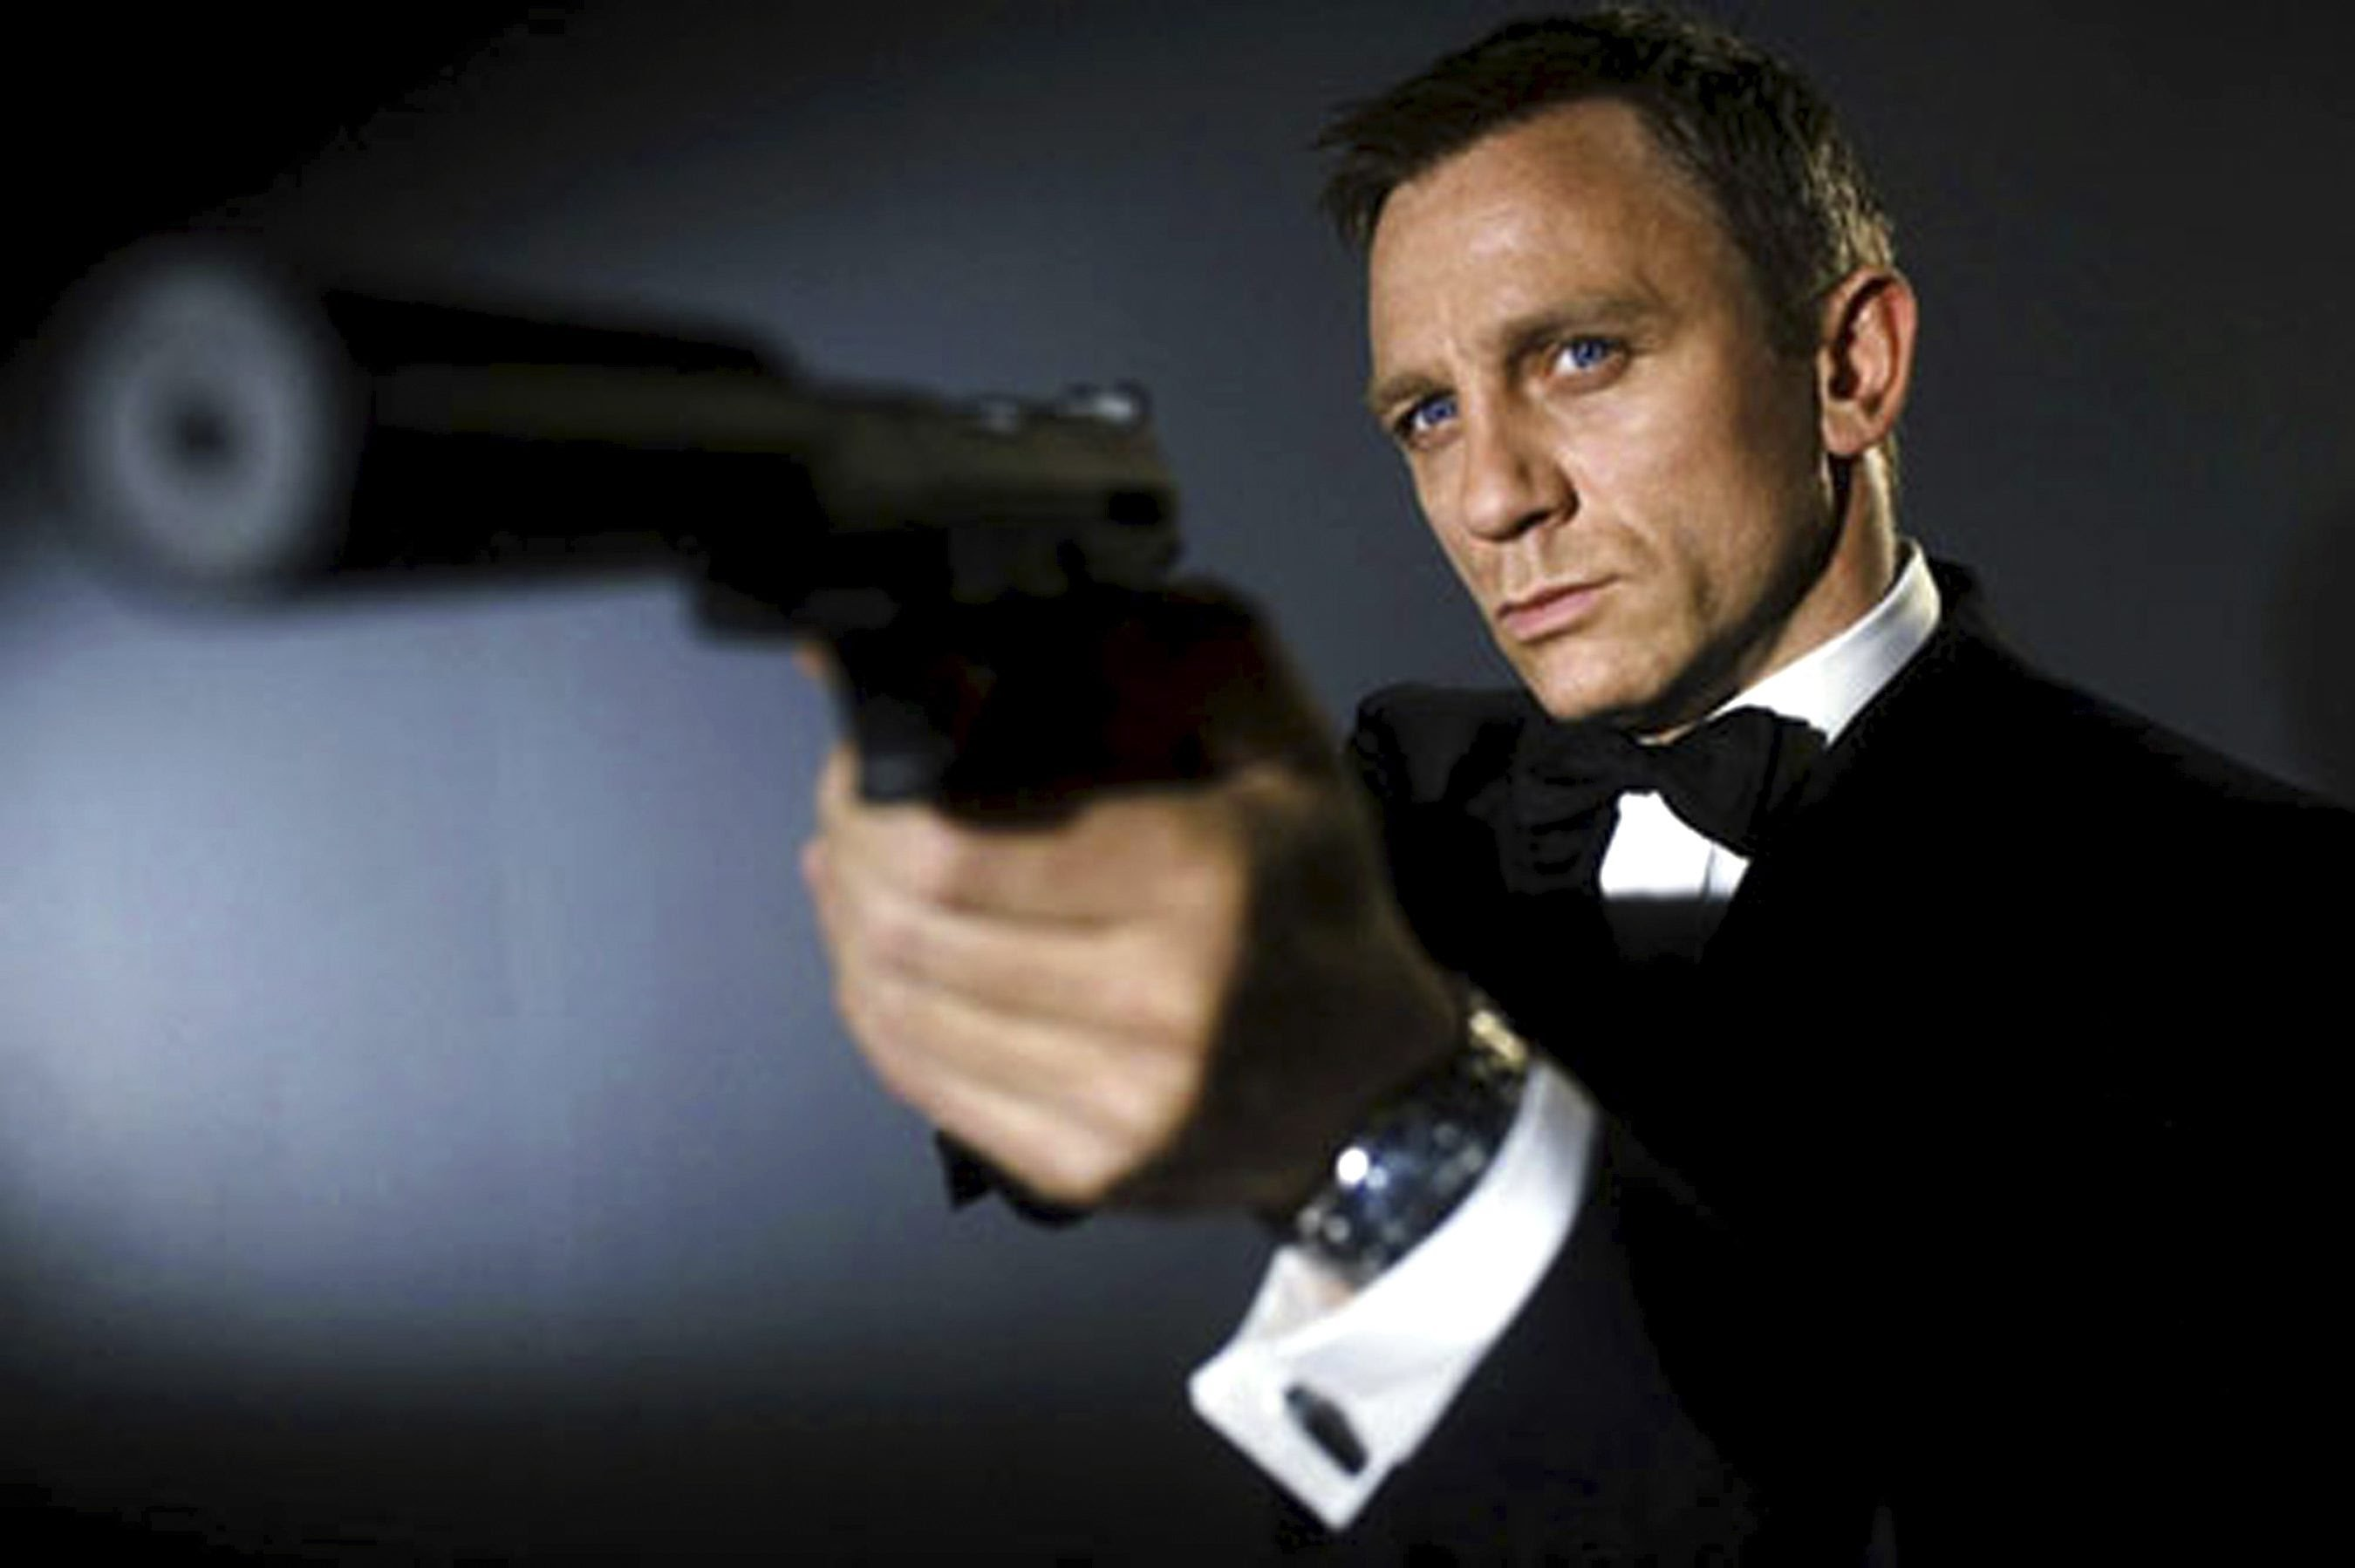 007 - a masculine hero. And yes that's a gun in his hand, Lena Dunham.